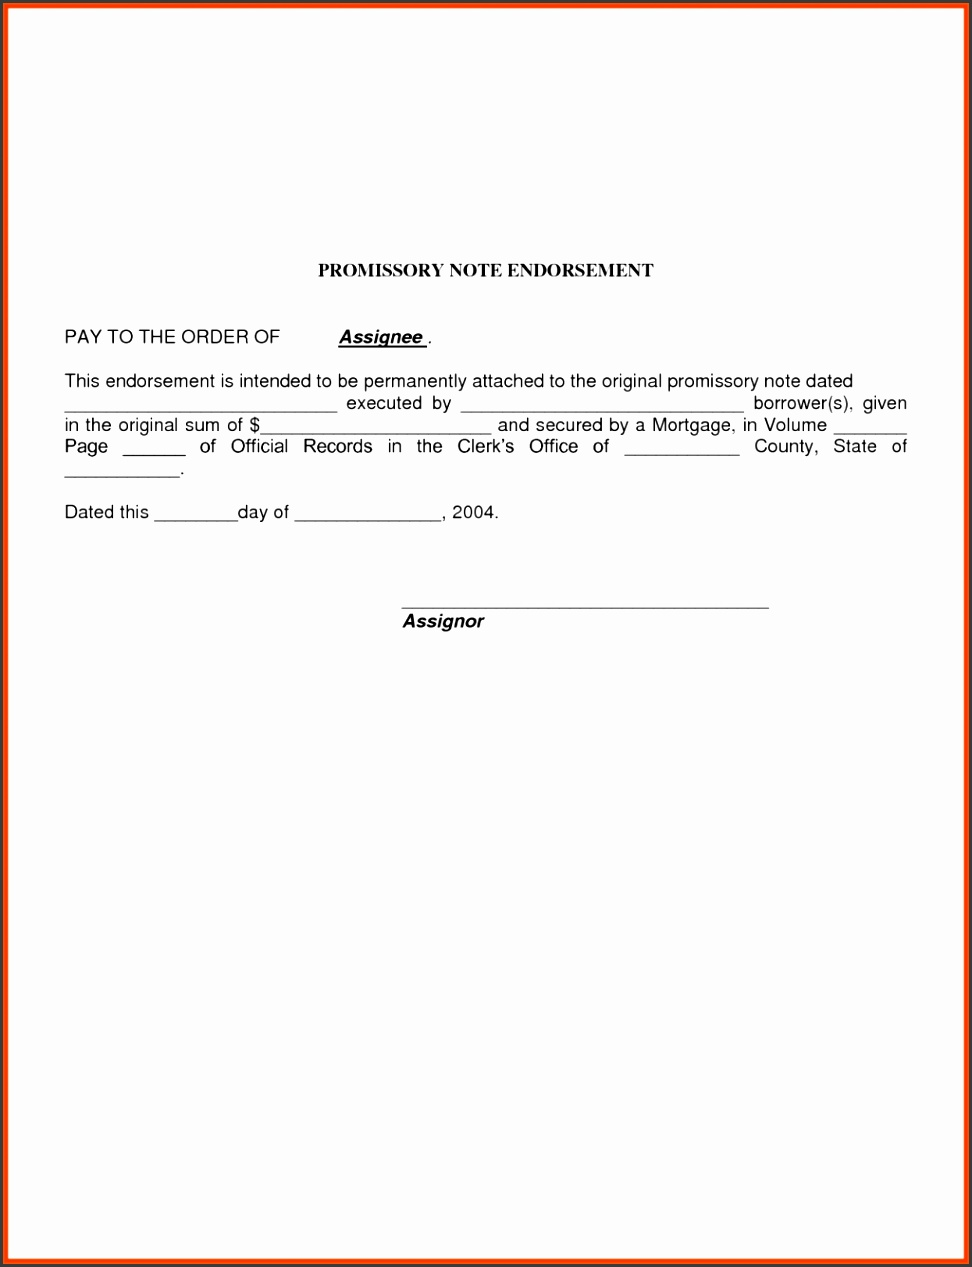 Notarizedetter Template Promissory Note Sample Notary Sponsorship Simple Blank Example Basic Profit Andoss Statementoan Agreement Pdf Employee